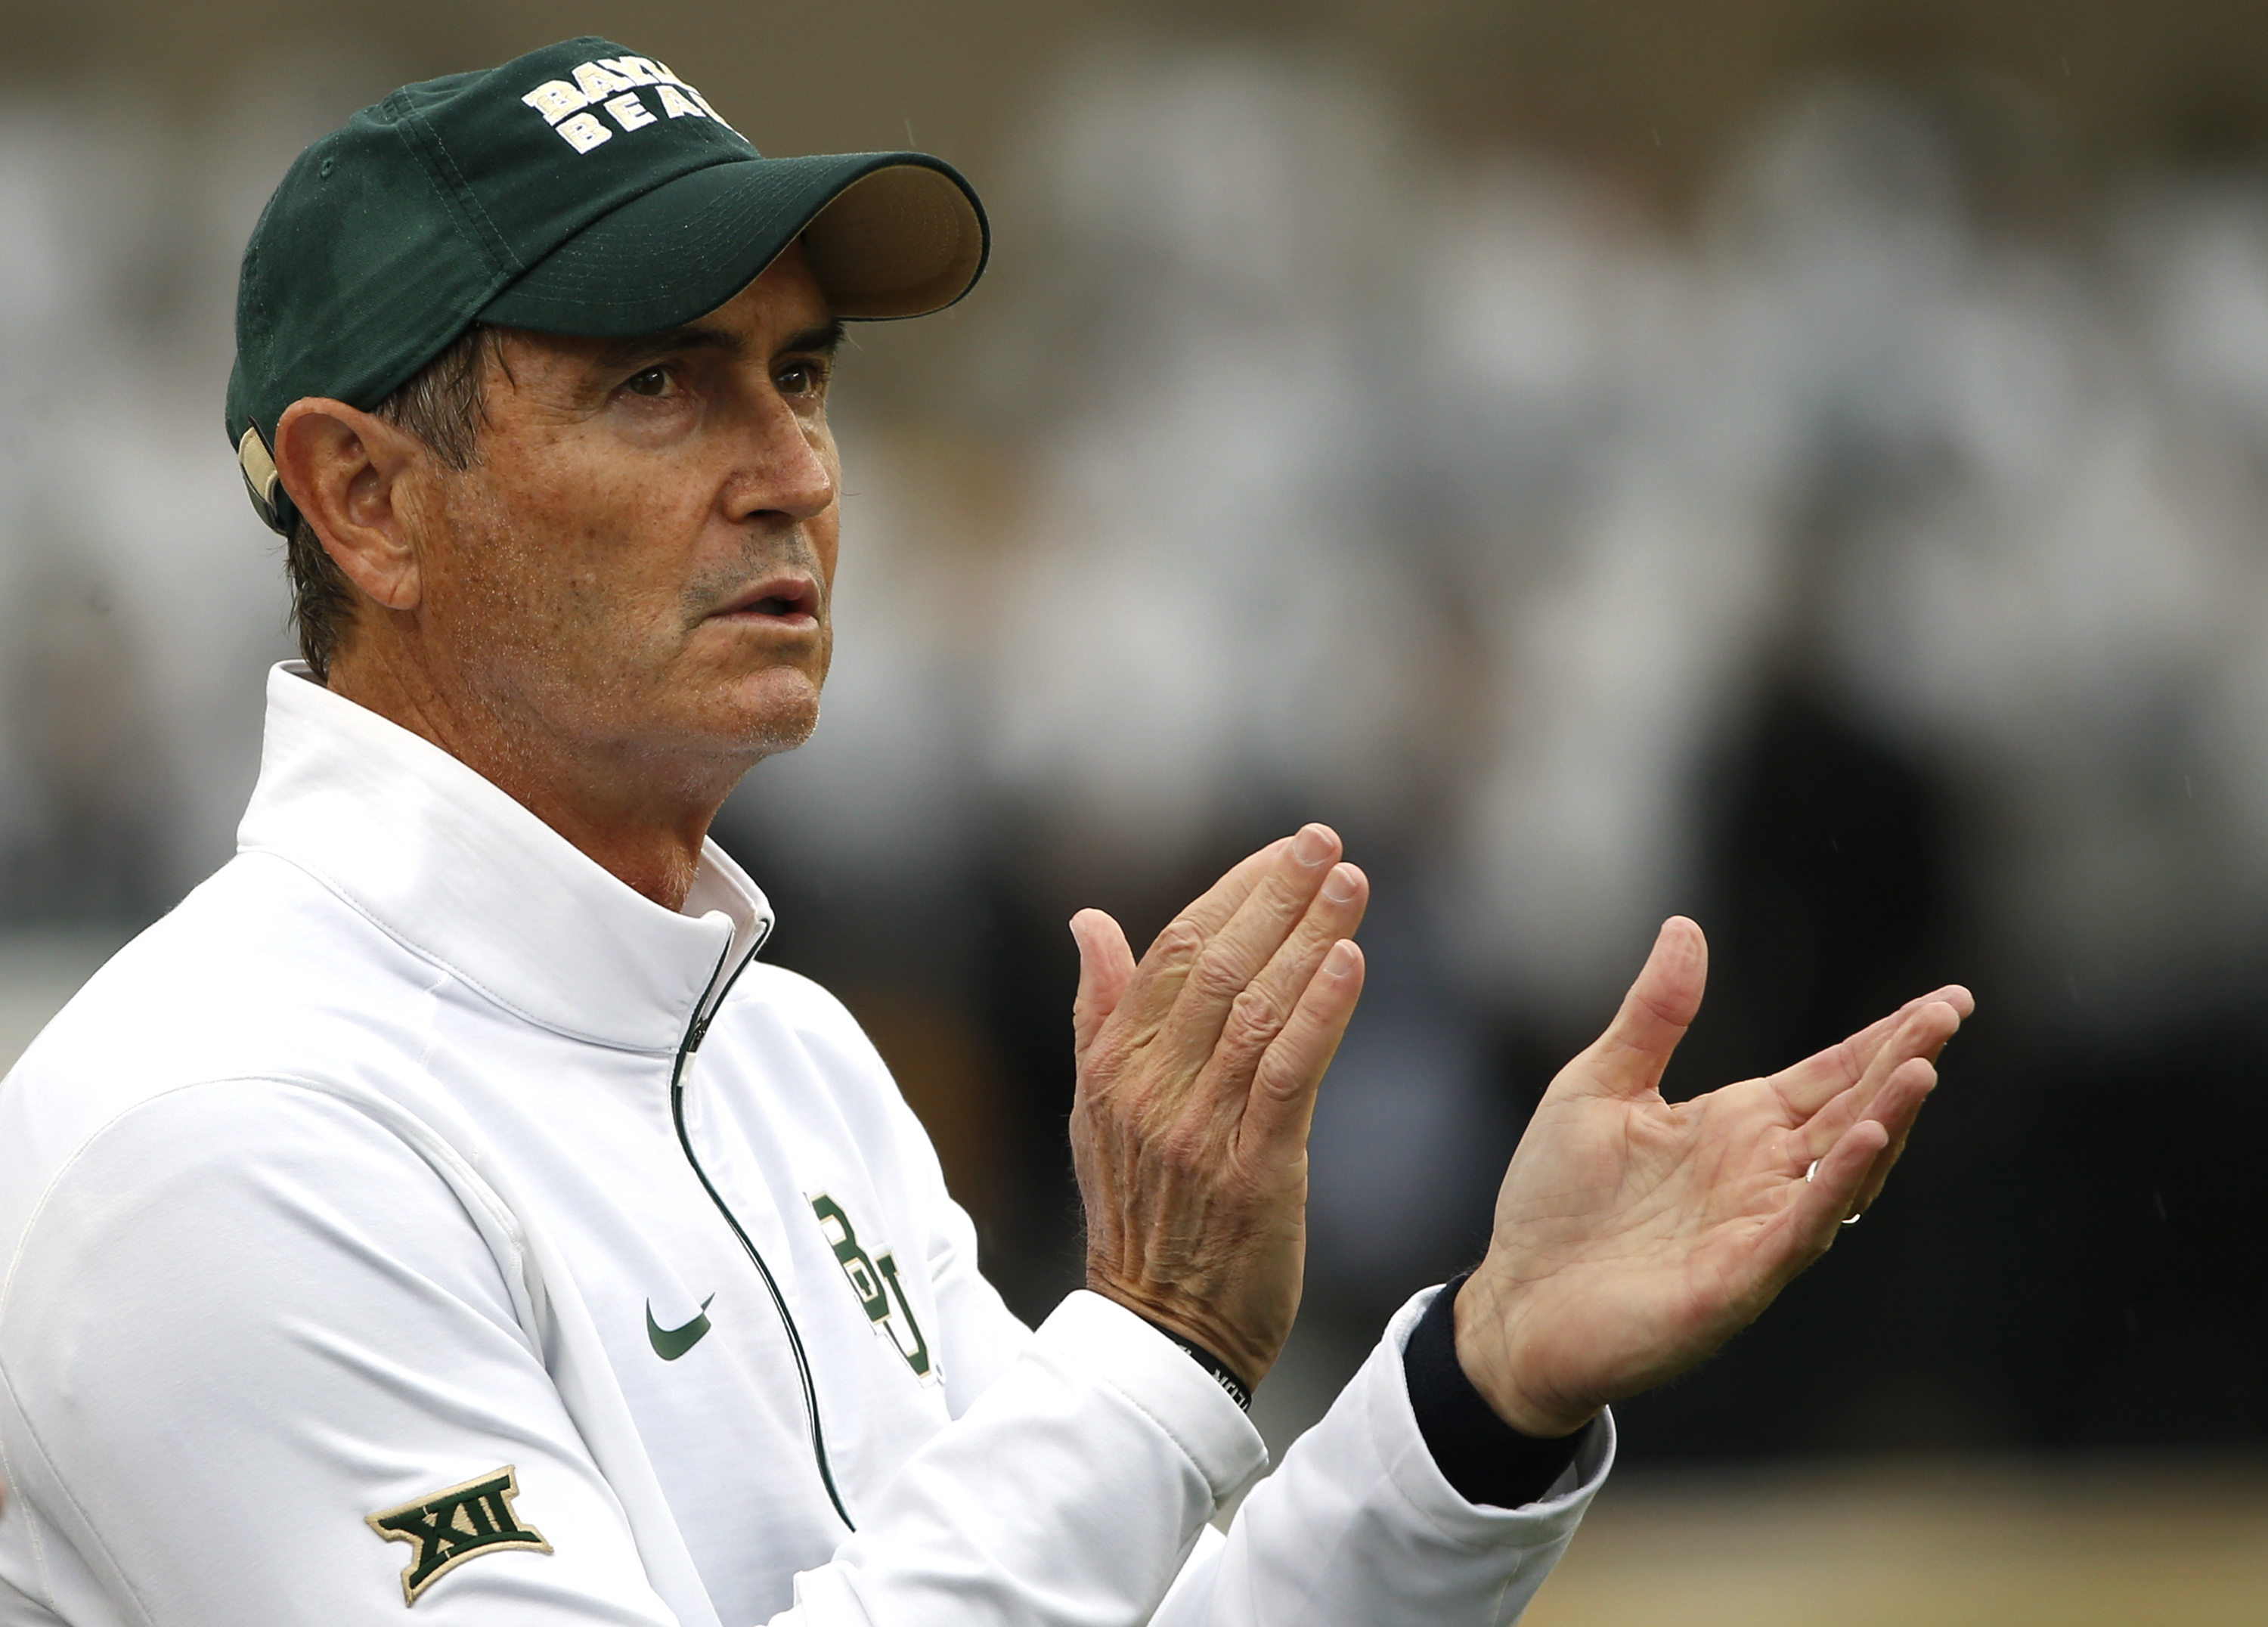 WACO, TX - OCTOBER 24: Baylor Bears head coach Art Briles applauds his team as the Bears take on the Iowa State Cyclones in the second half at McLane Stadium on October 24, 2015 in Waco, Texas. (Photo by Ron Jenkins/Getty Images)